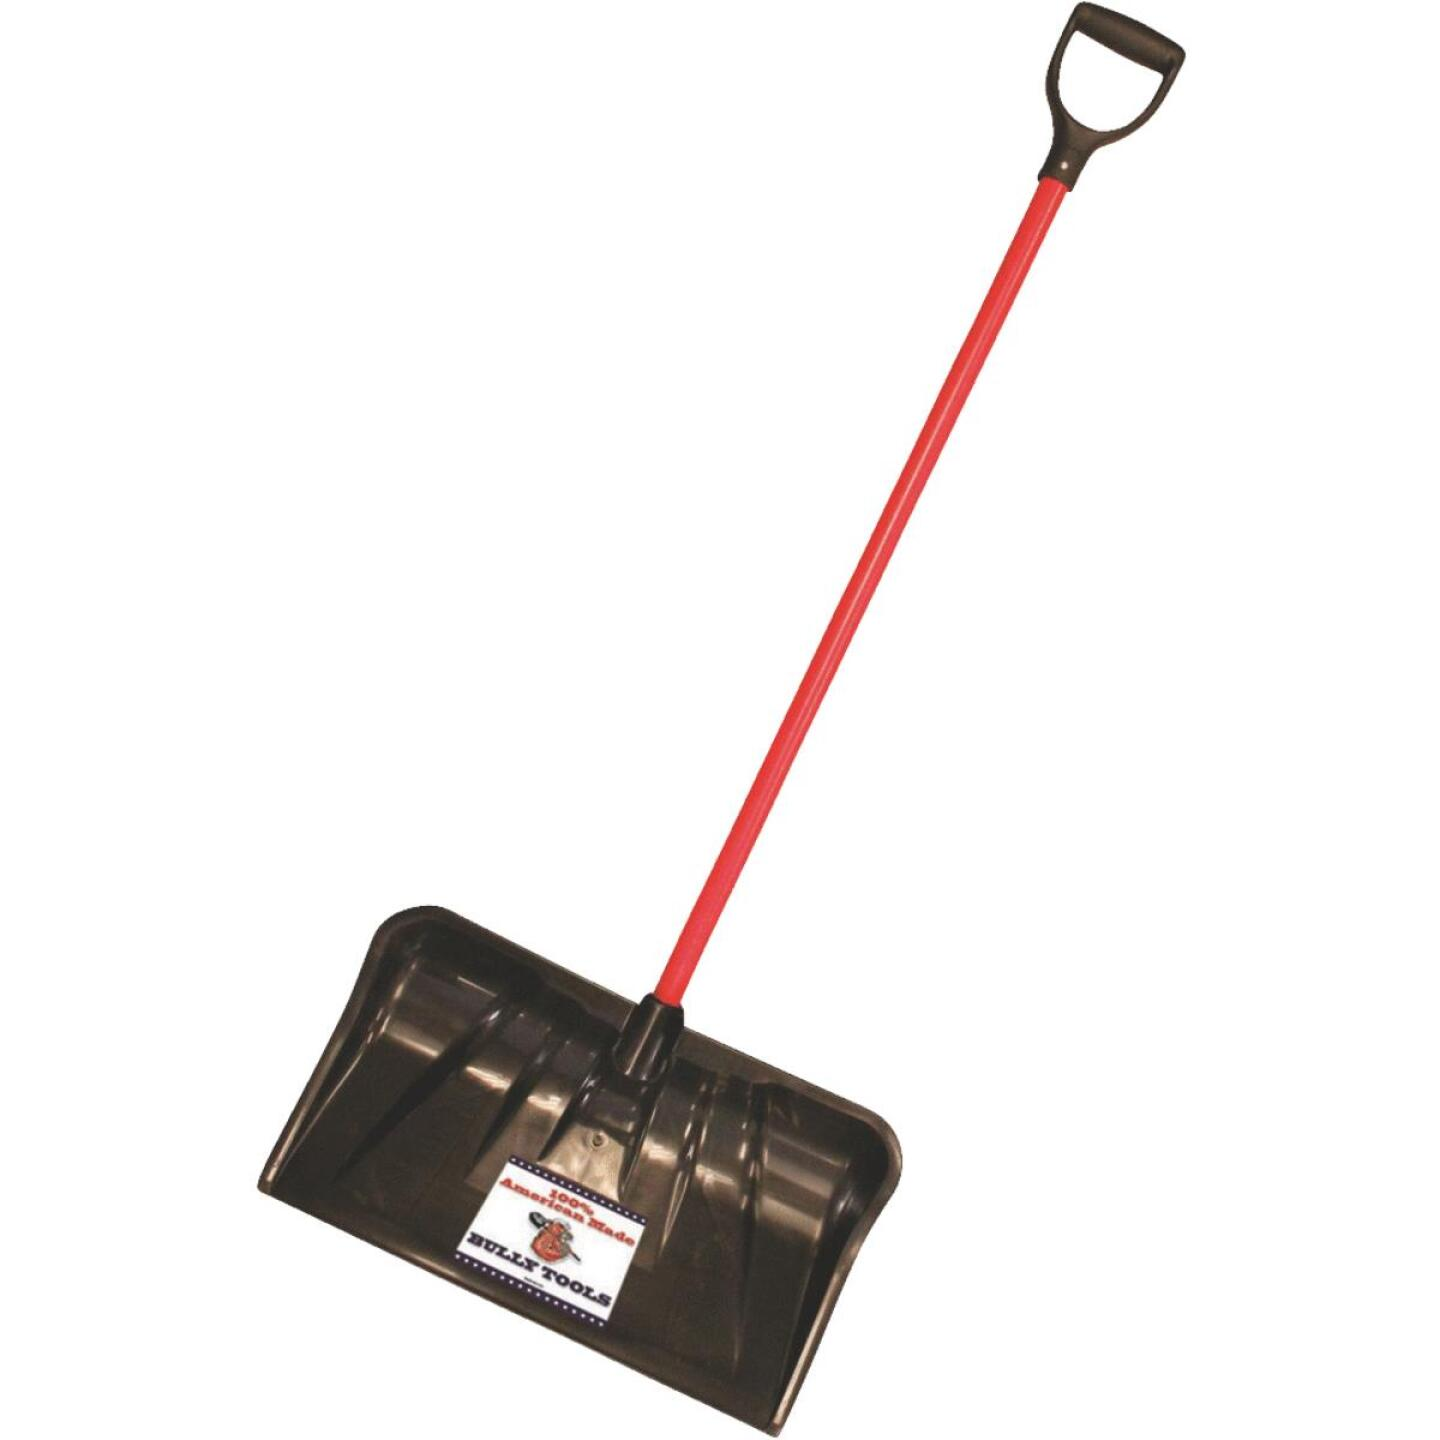 Bully Tools 22 In. Poly Combo Snow Pusher with 37 In. Fiberglass Handle Image 1